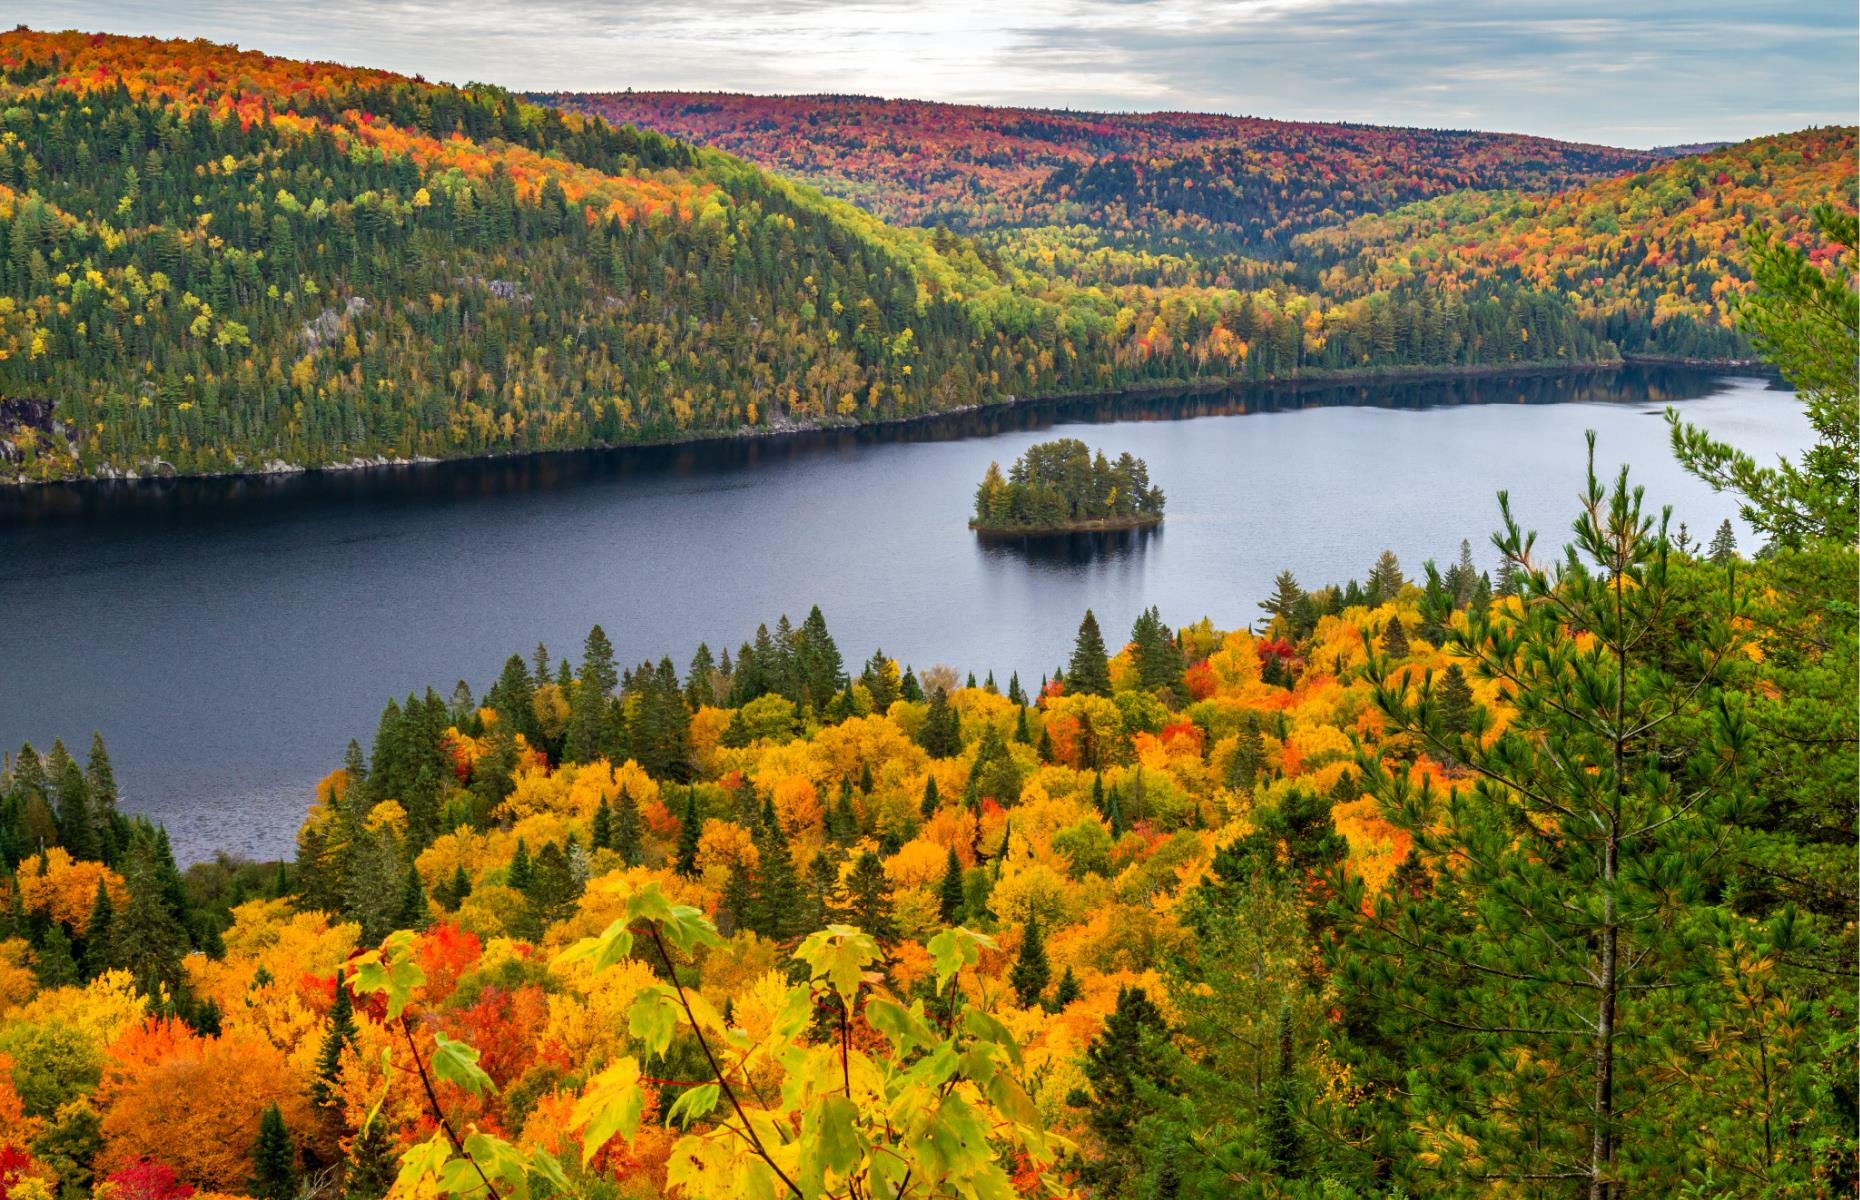 Slide 24 of 31: Lake Wapizagonke sits in La Mauricie National Park, which is unquestionably one of the most beautiful places in Canada to catch the colors of fallleaves. For just a few weeks each fall the trees around the lake blaze with hues of bright orange, yellowand red. There are other lakes in the park, but Lake Wapizagonke is special in that it is so long and narrow.